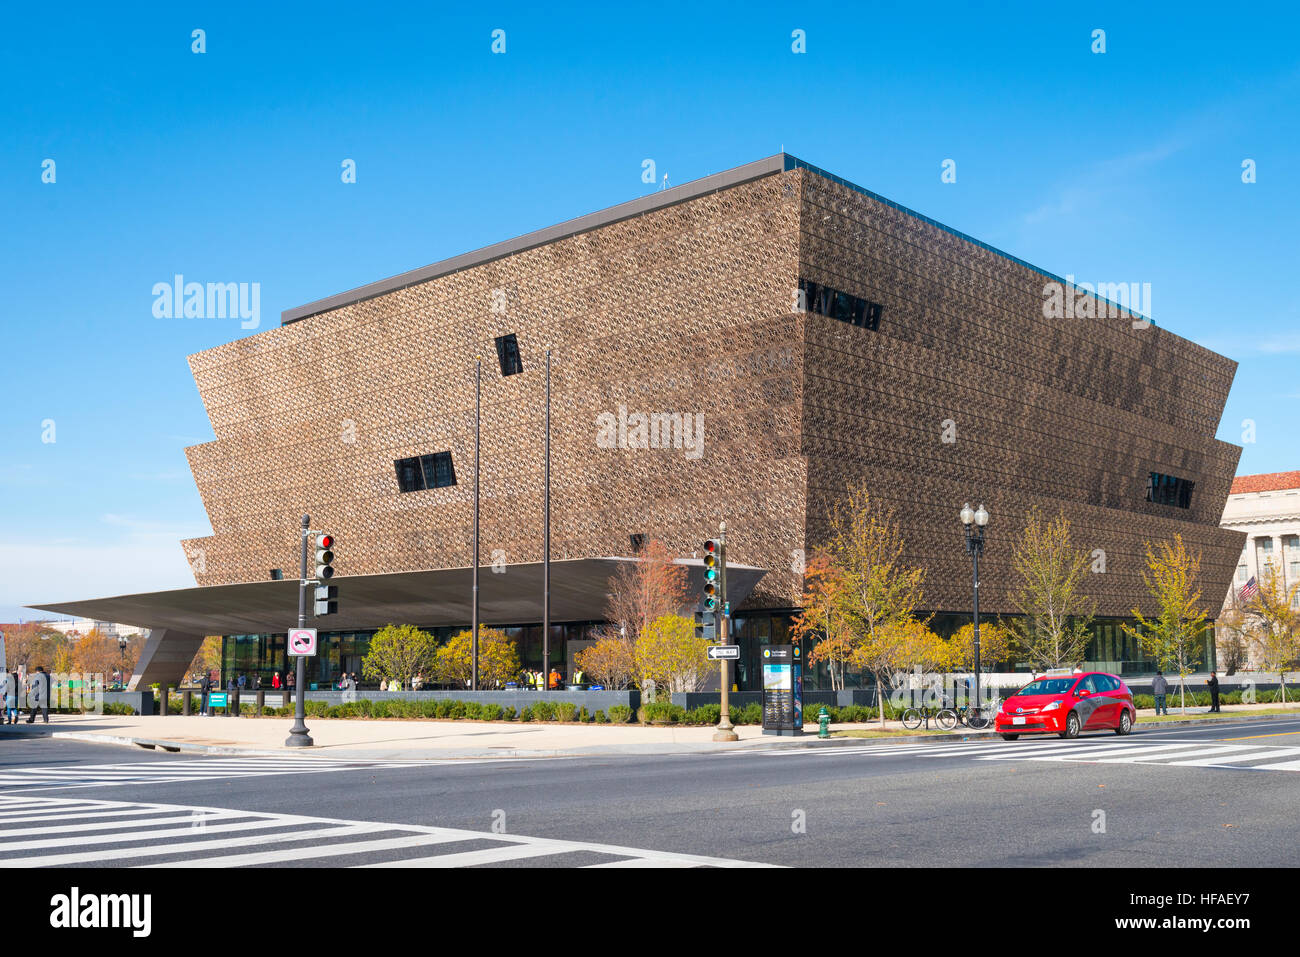 USA capital Washington DC entrance District Columbia National Museum of African American History & Culture facade - Stock Image